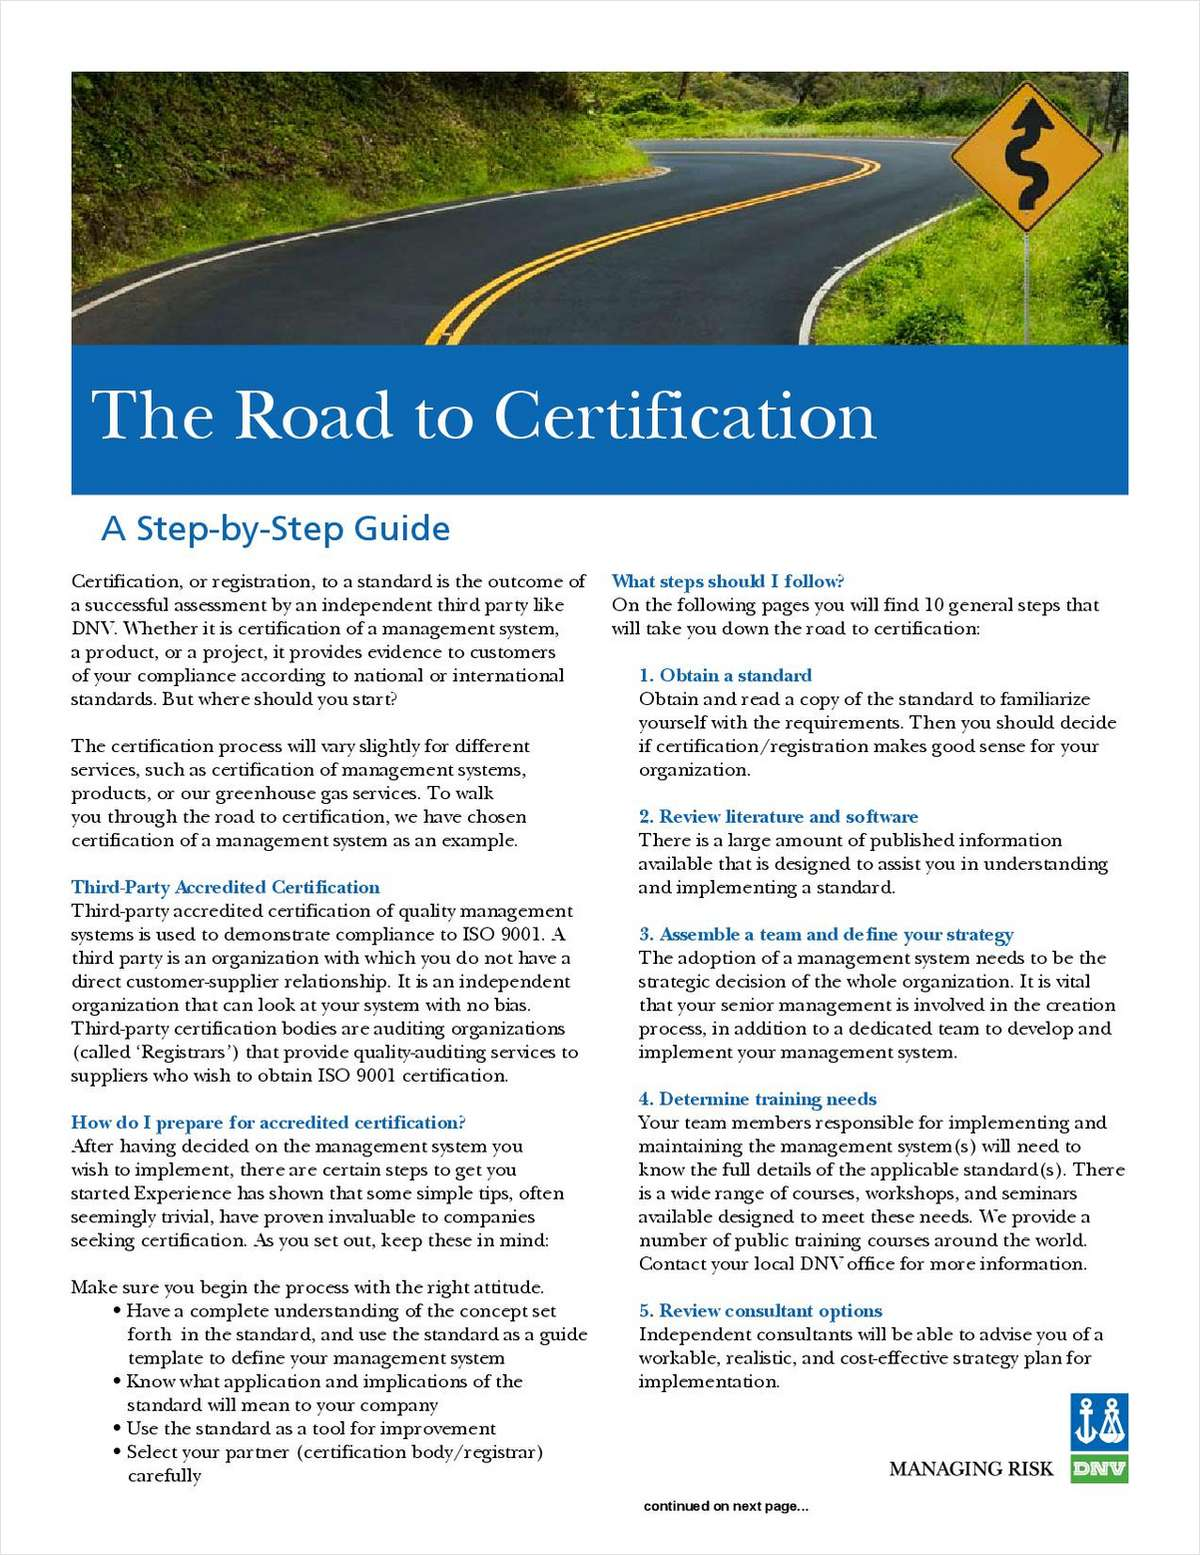 Road to Management System Certification